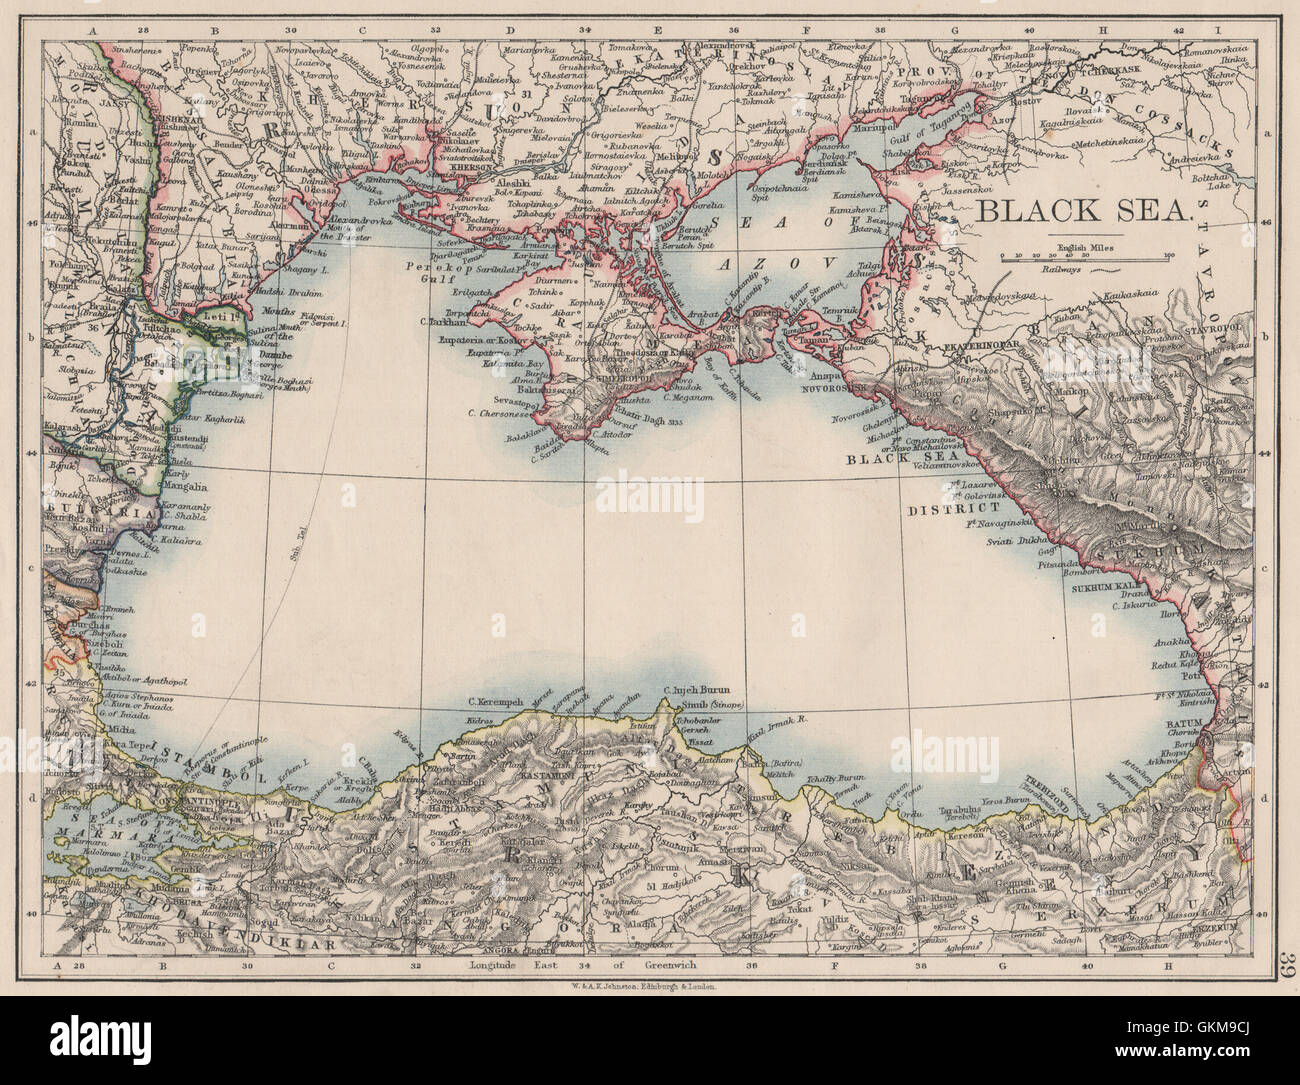 Black Sea Russia Turkey Crimea Romania Bulgaria Kutais Johnston